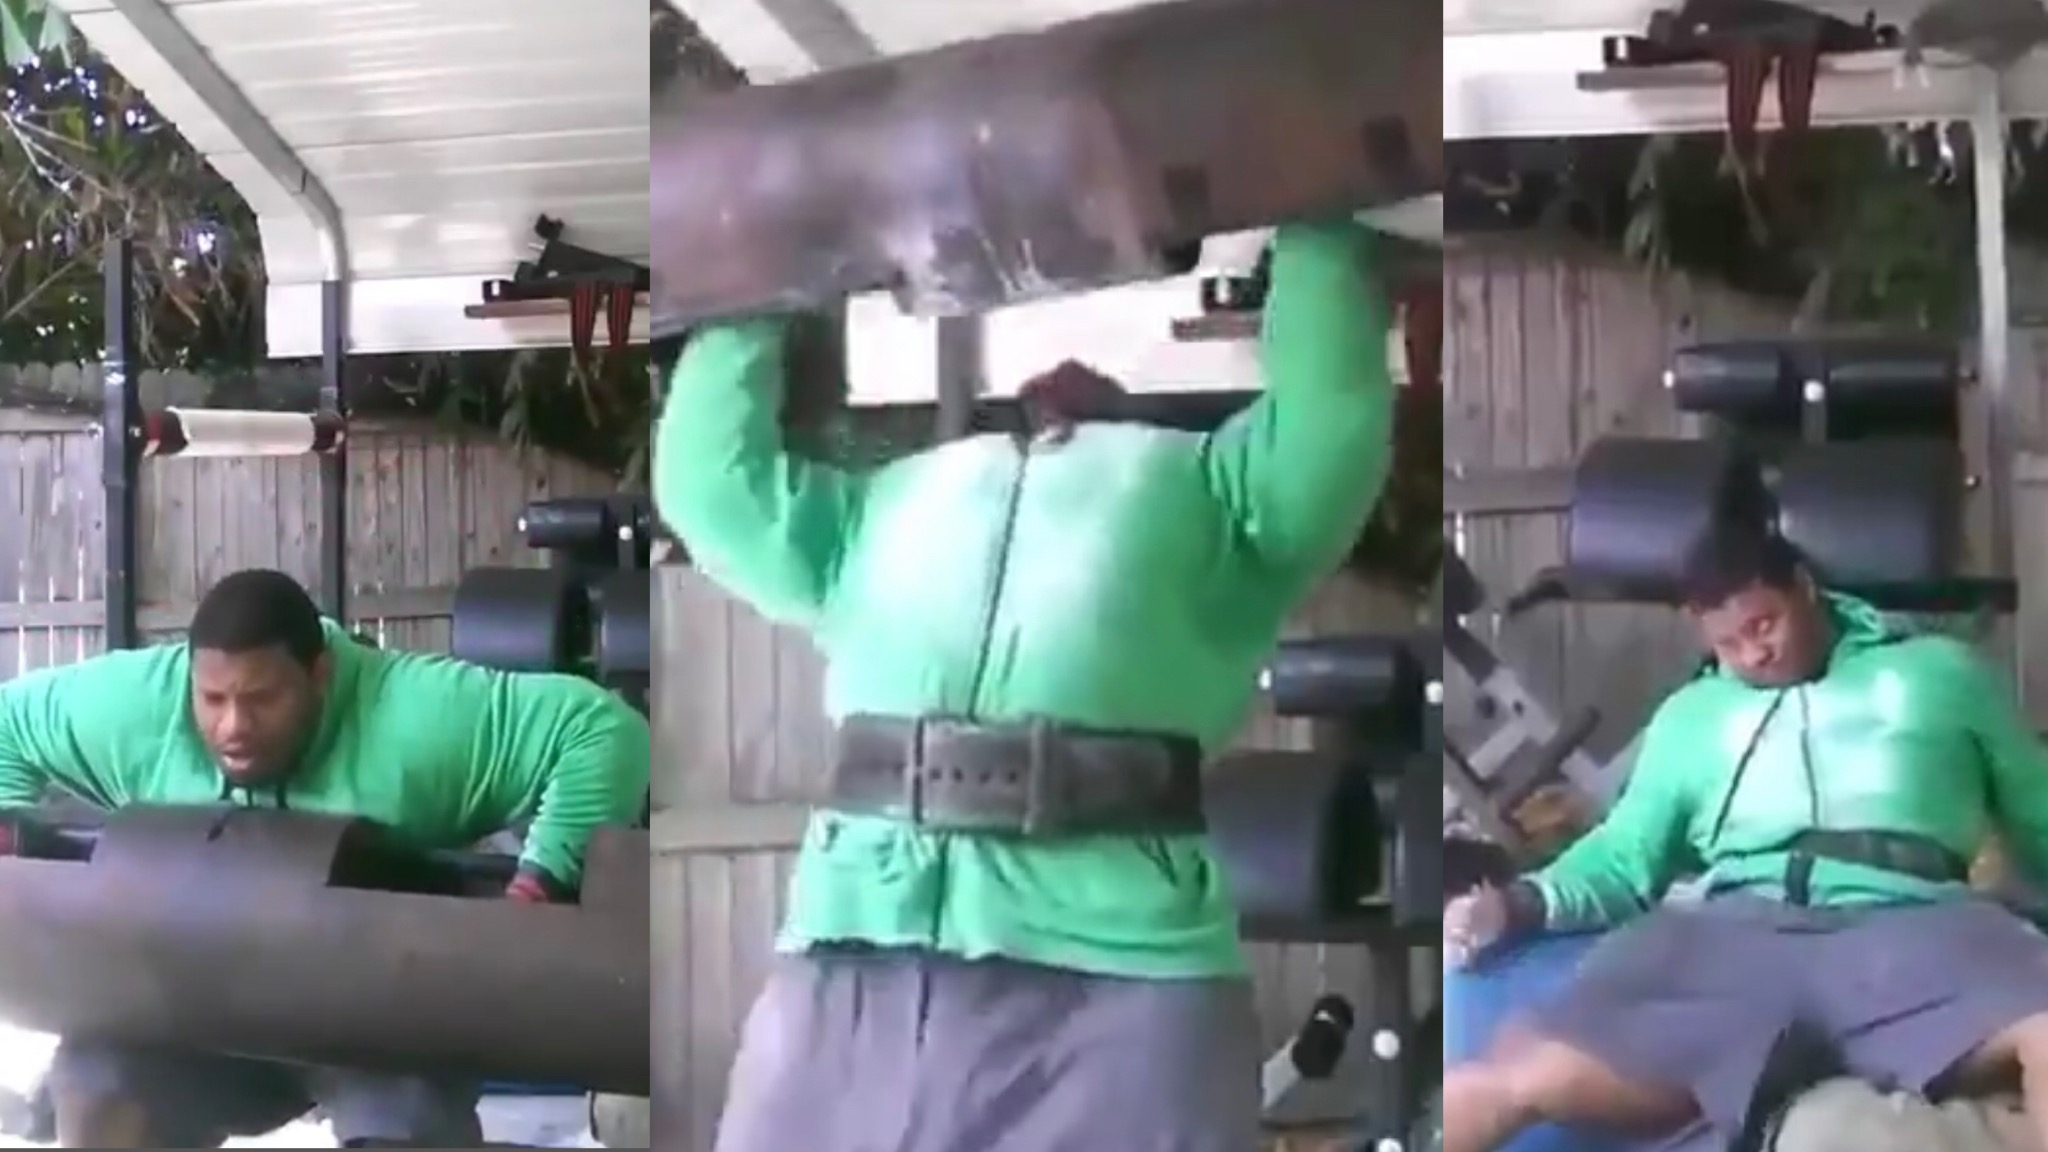 HE NEED SOME MILK!! Man almost kills himself lifting 500 pound weight